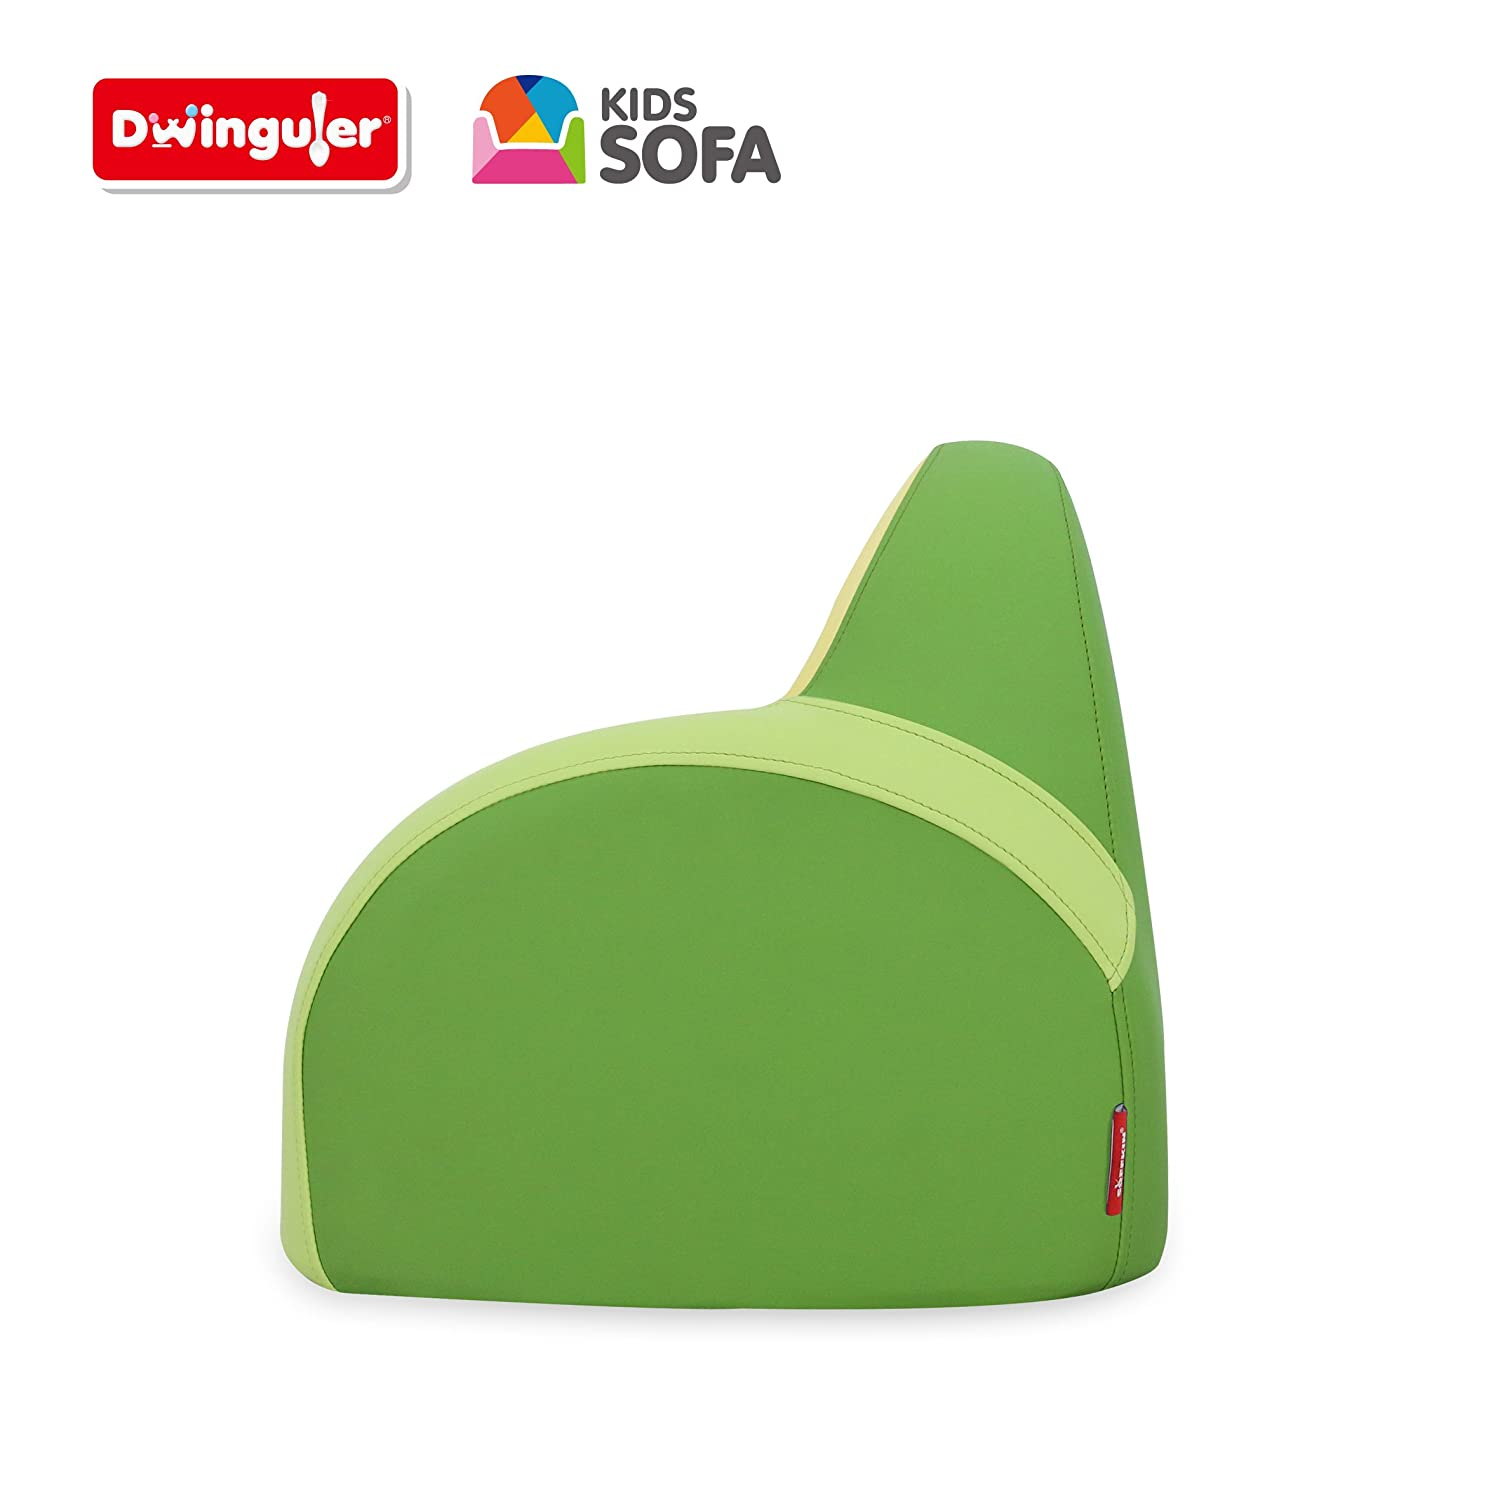 Buy Dwinguler Kids Sofa Lime Green line at Low Prices in India